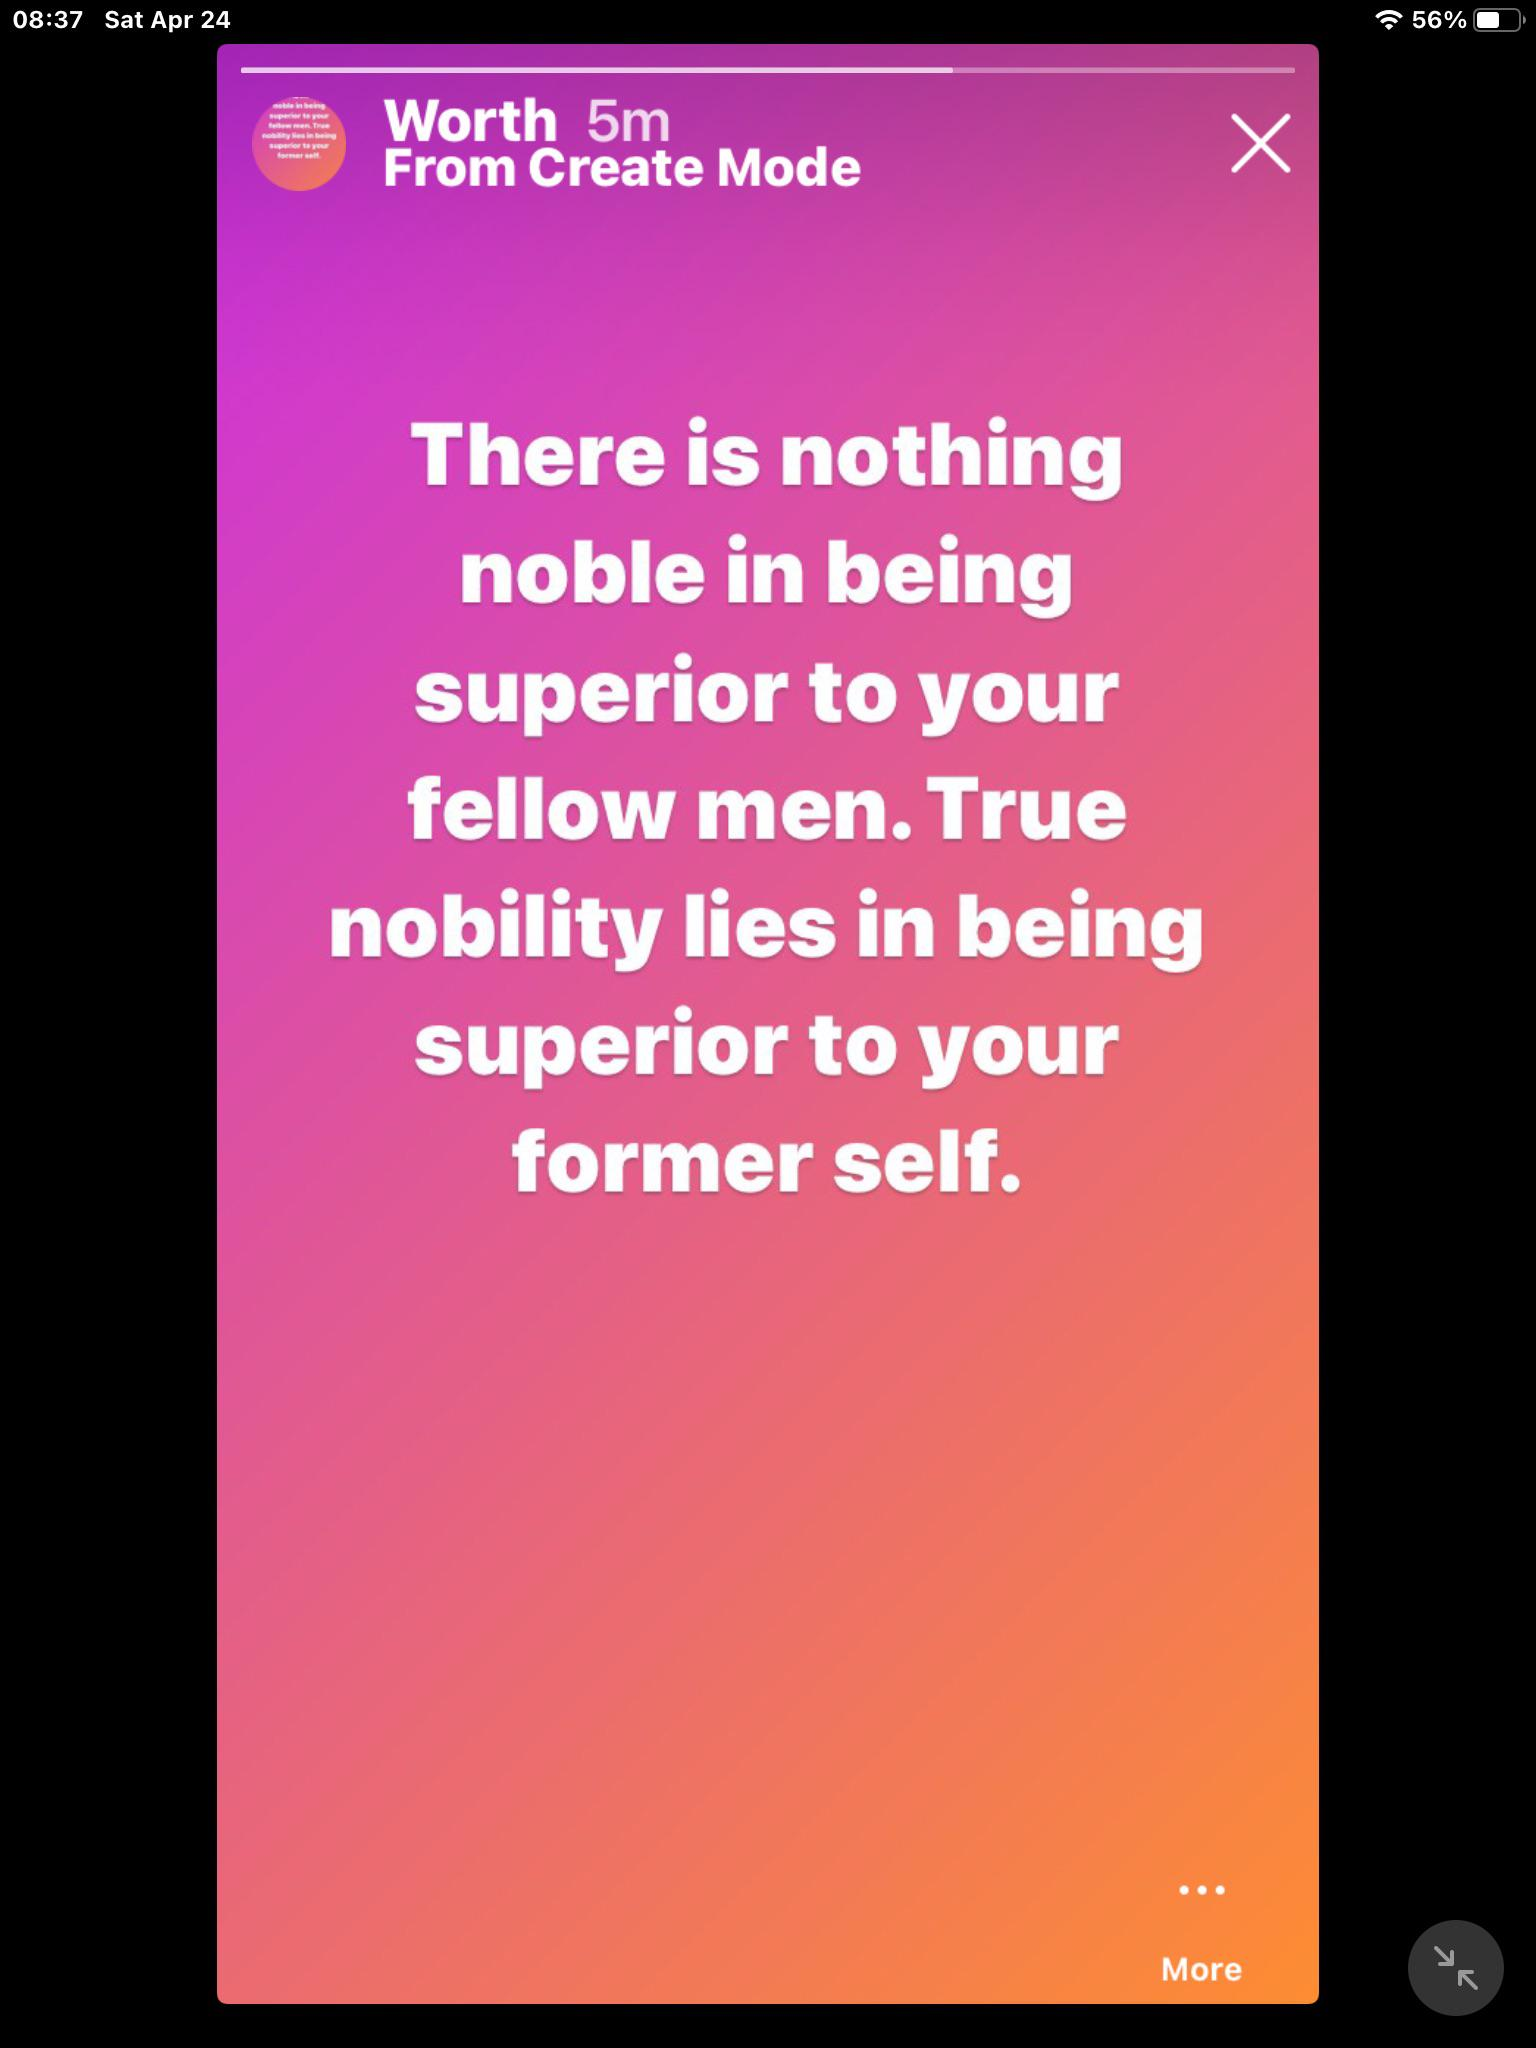 There is nothing noble in being superior to your fellow men. True nobility lies in being superior to your former self Hemmingway. [1080*1080]